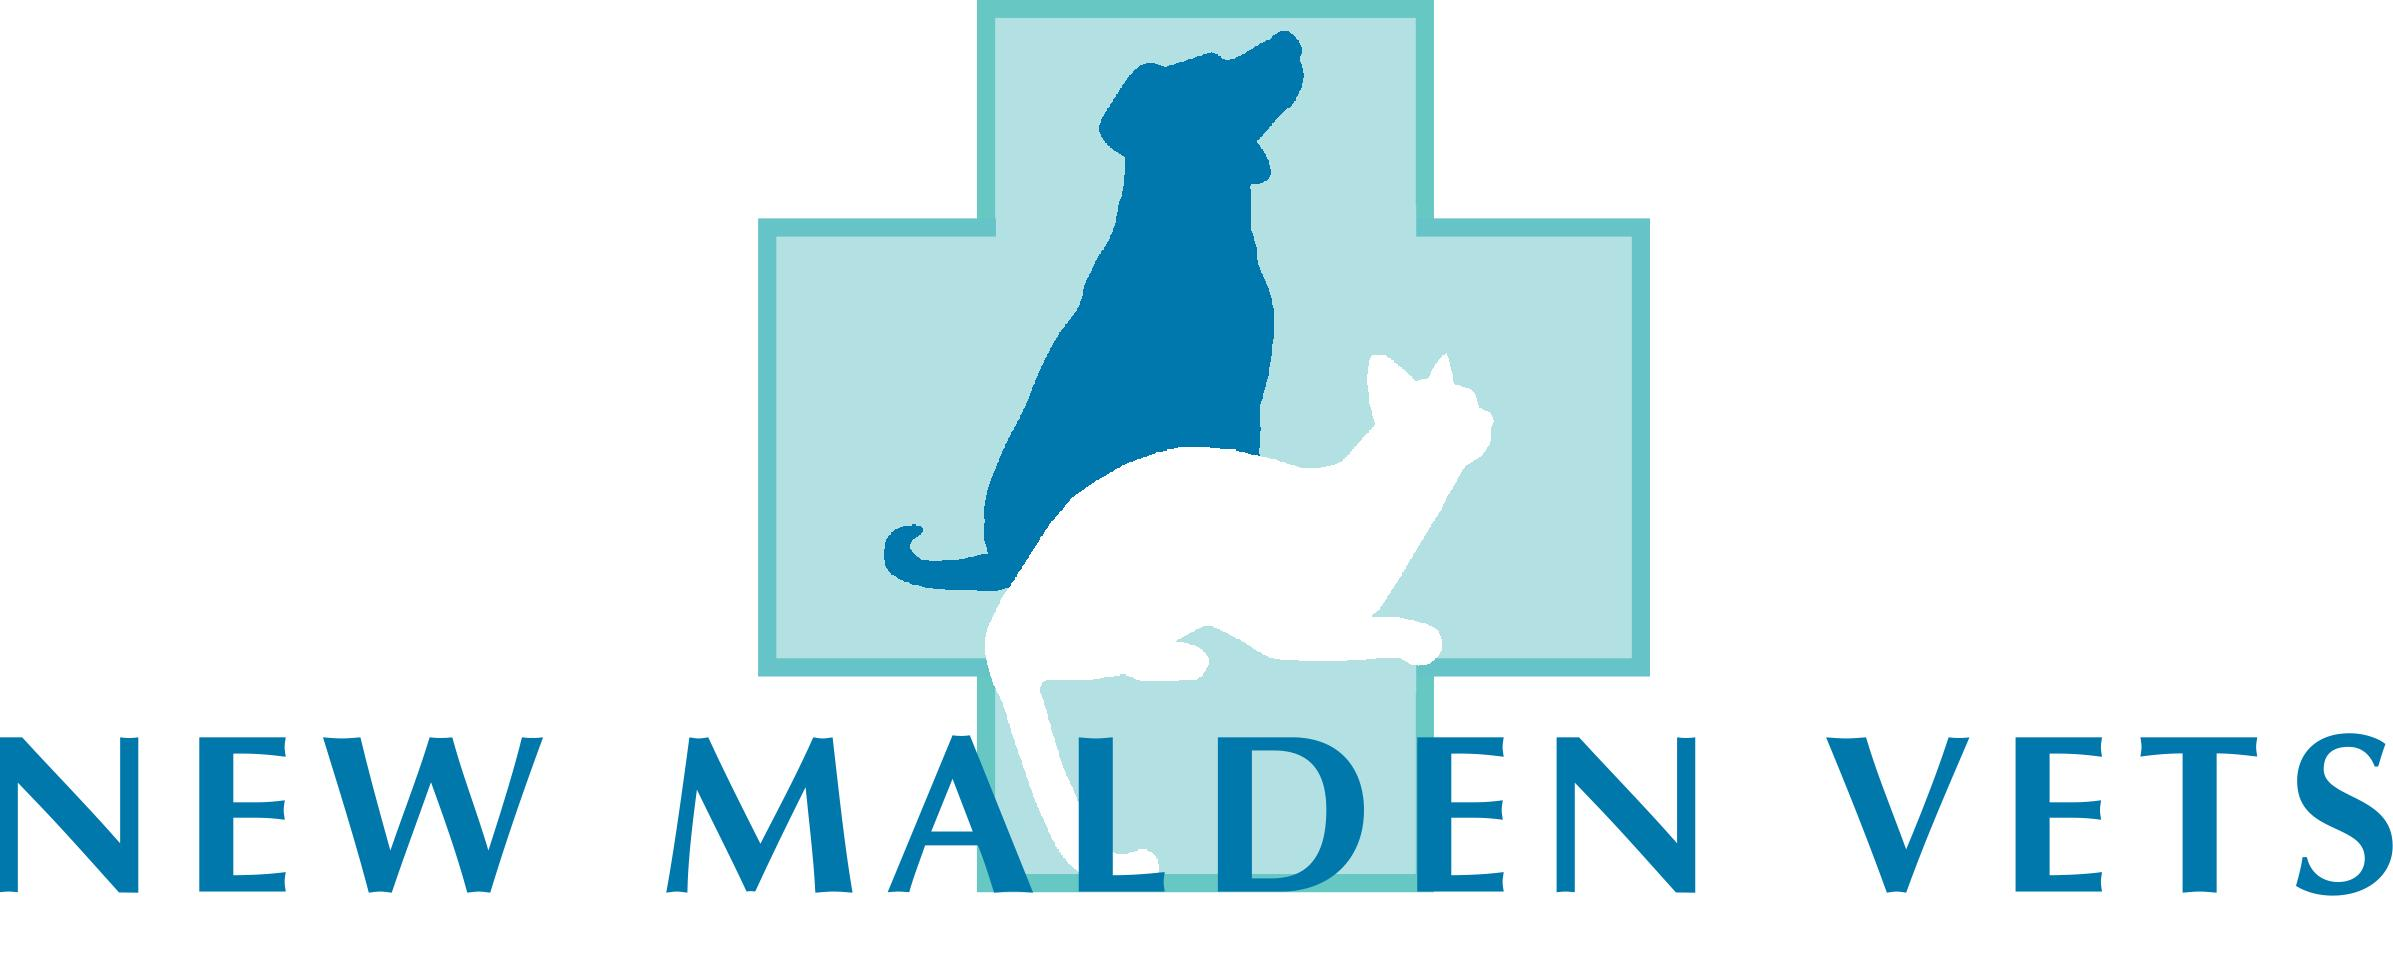 New Malden Vets